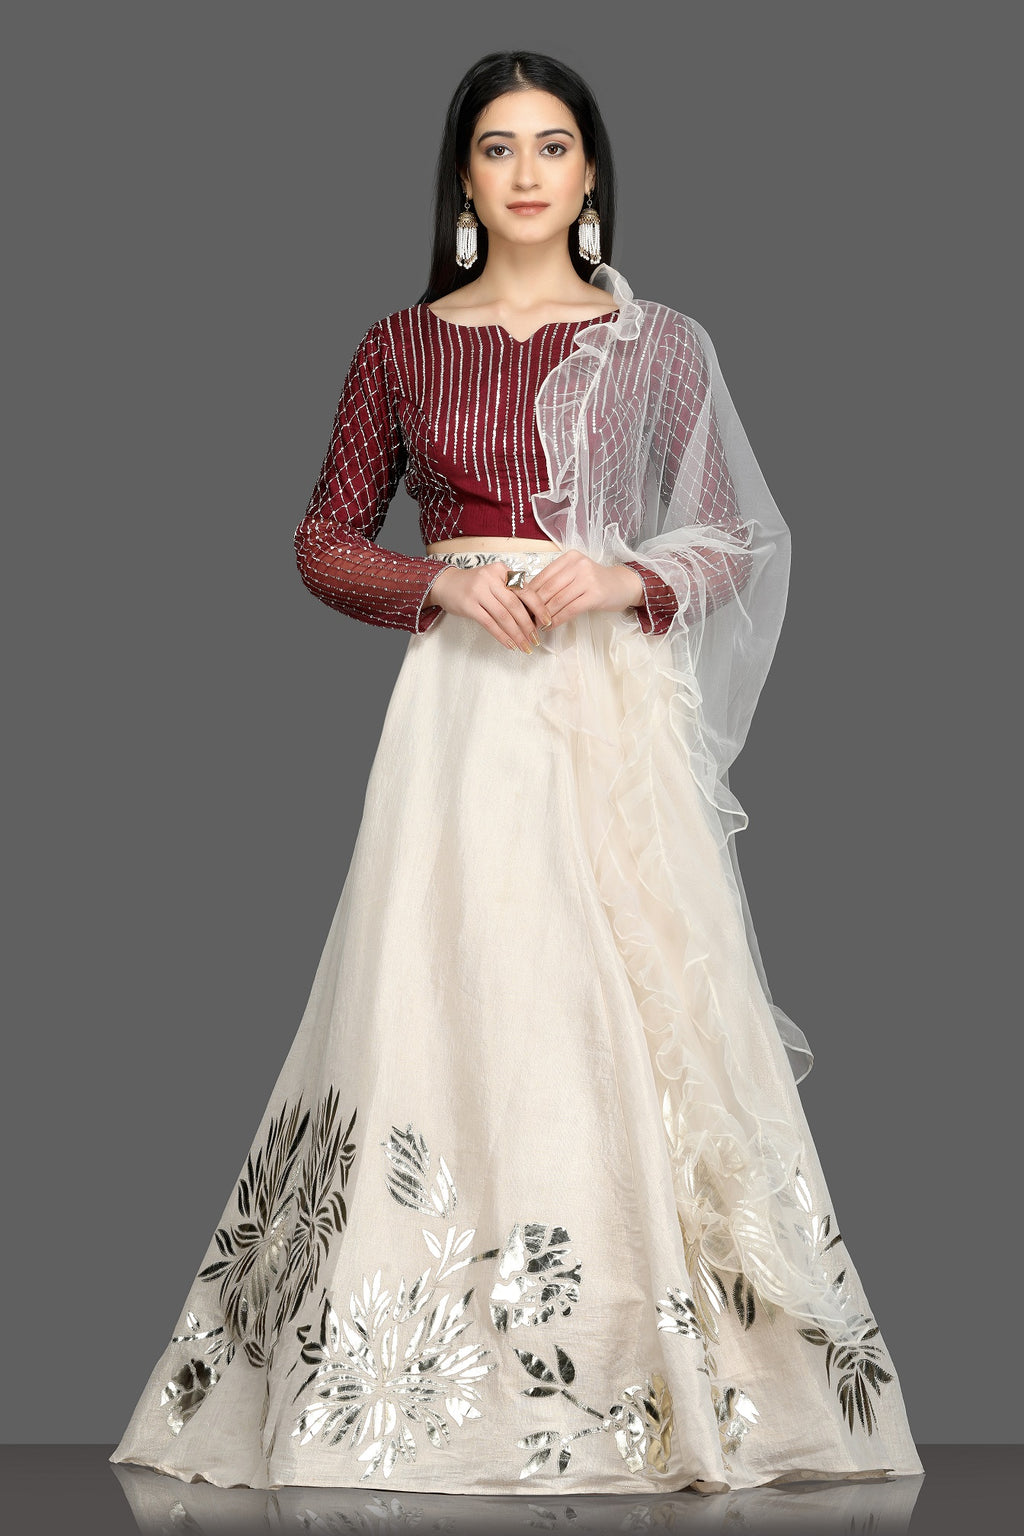 Buy gorgeous wine and cream applique work lehenga online in USA with ruffle dupatta. Flaunt your sartorial choices on special occasions with beautiful designer gowns, Anarkali suits, traditional salwar suits, Indian lehengas from Pure Elegance Indian fashion boutique in USA. -full view